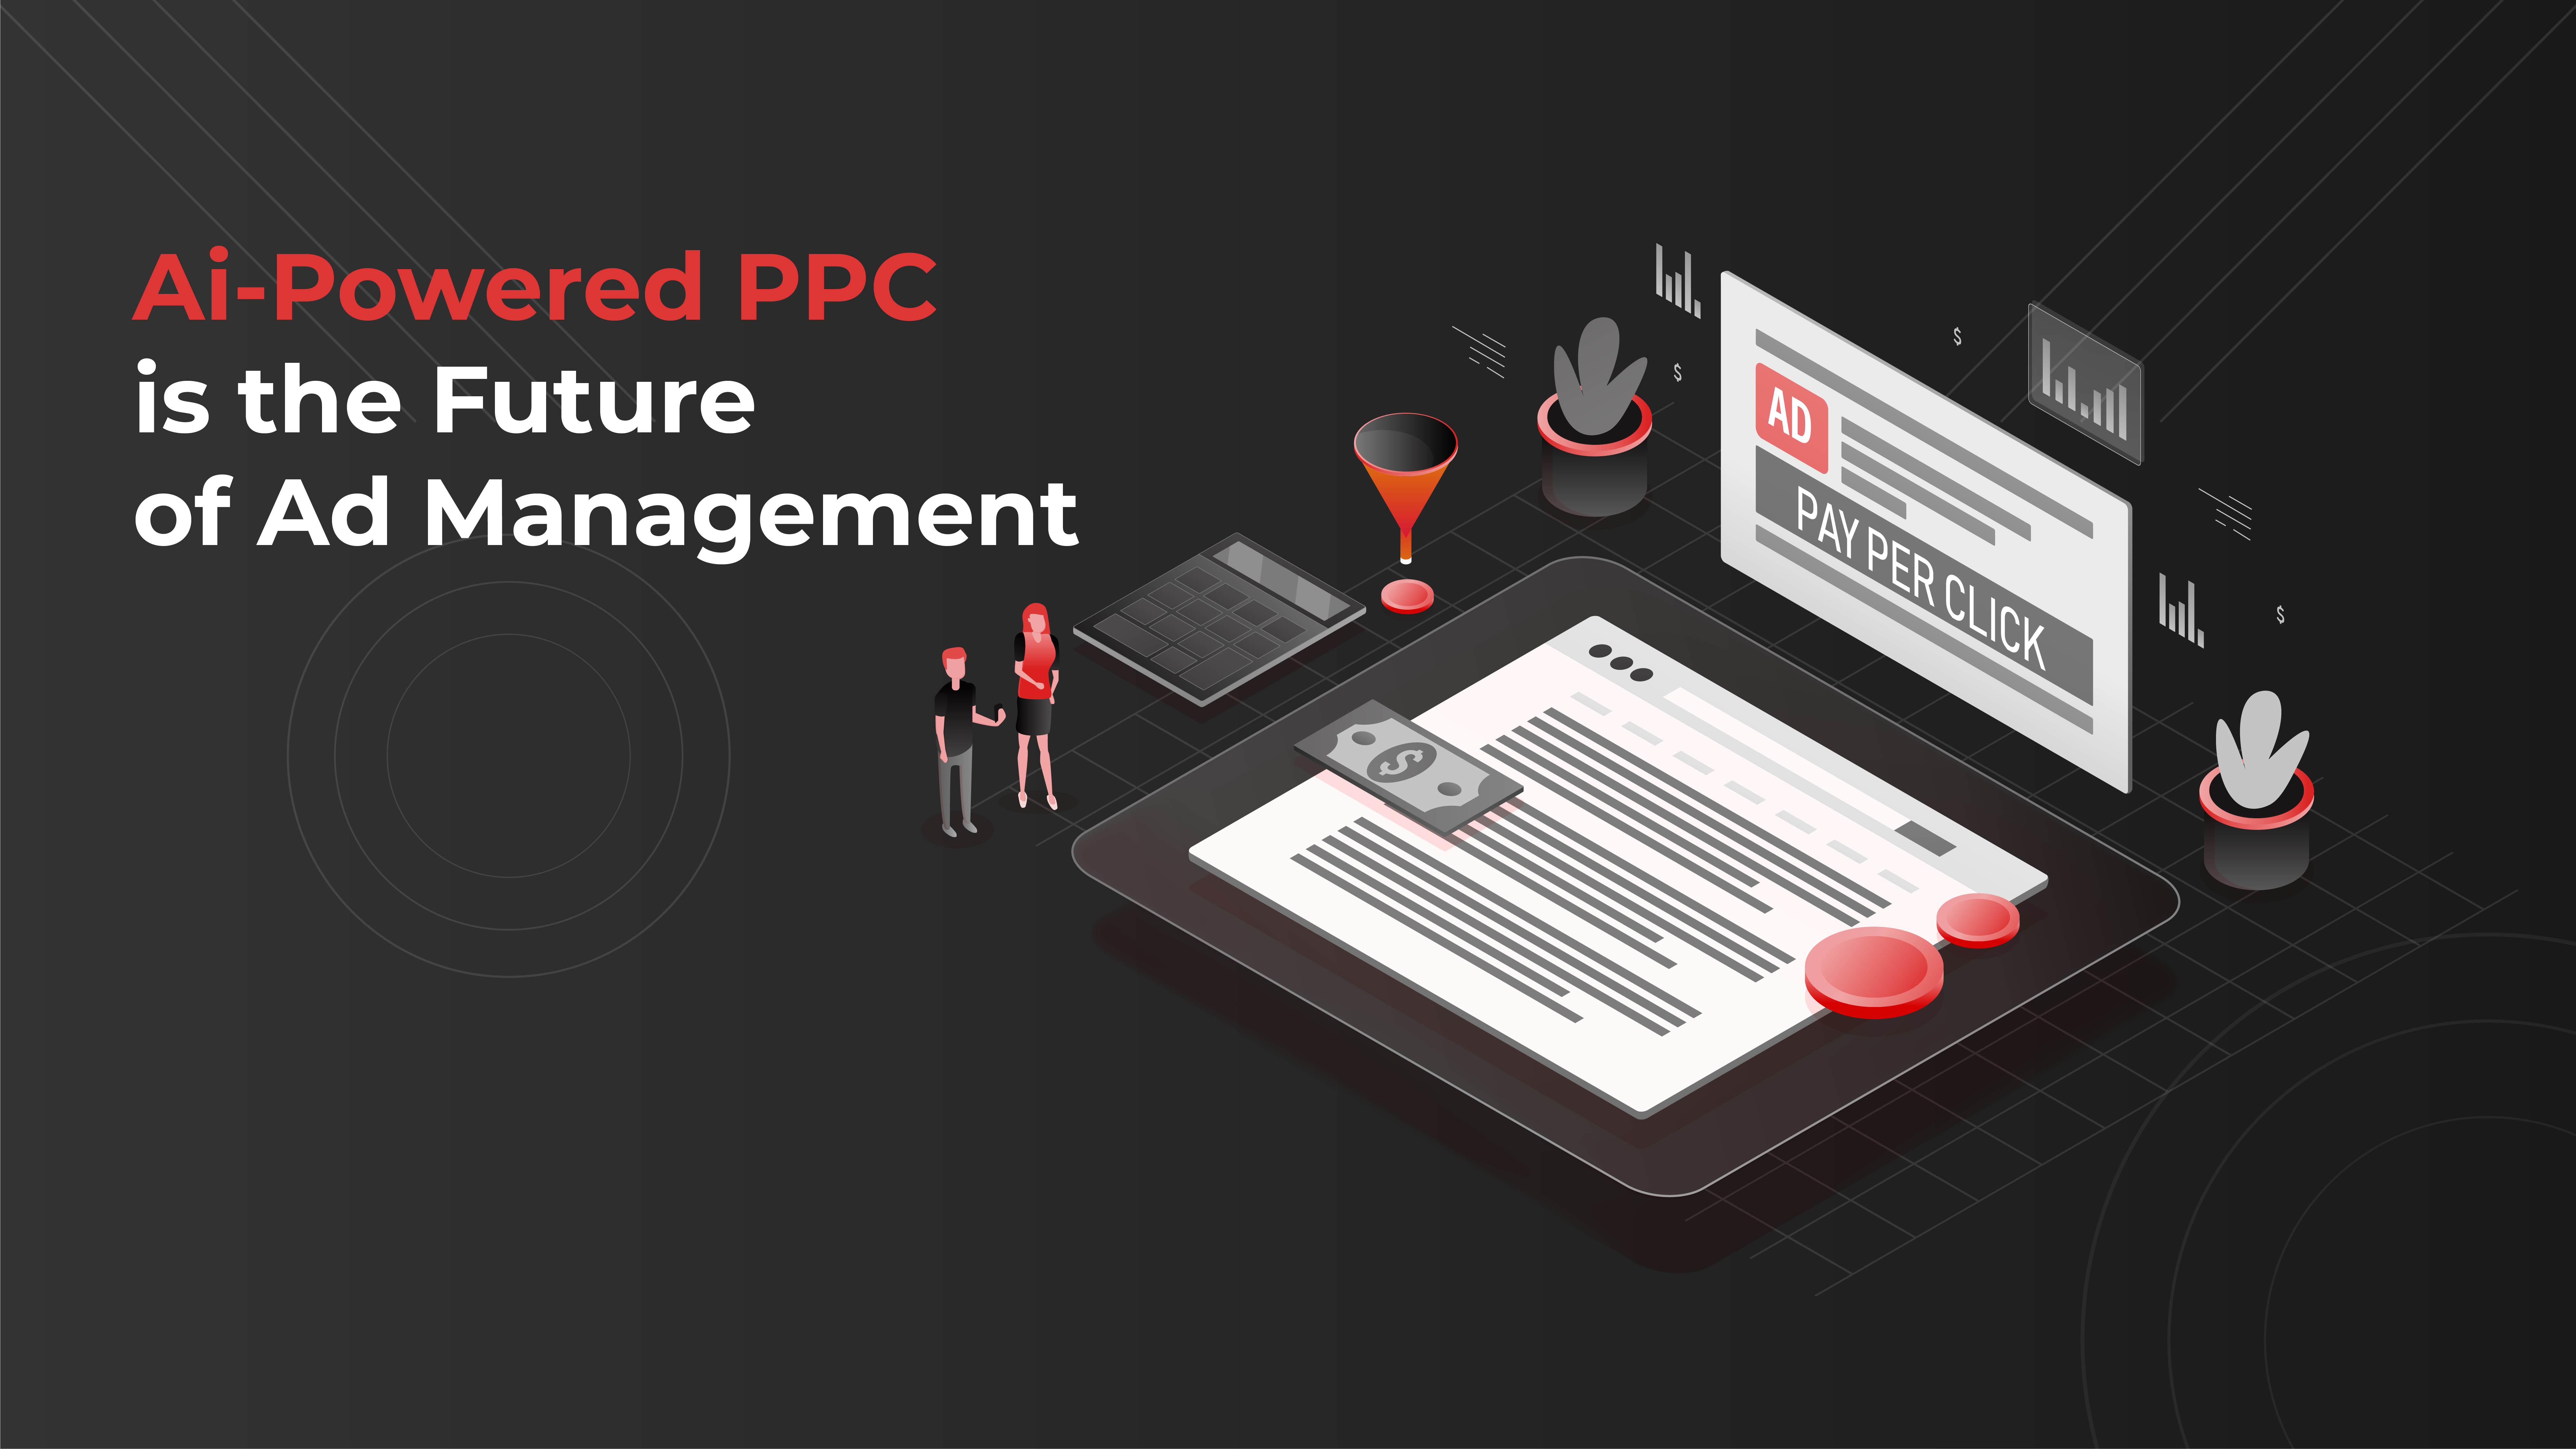 AI-Powered PPC is the Future of Ad Management